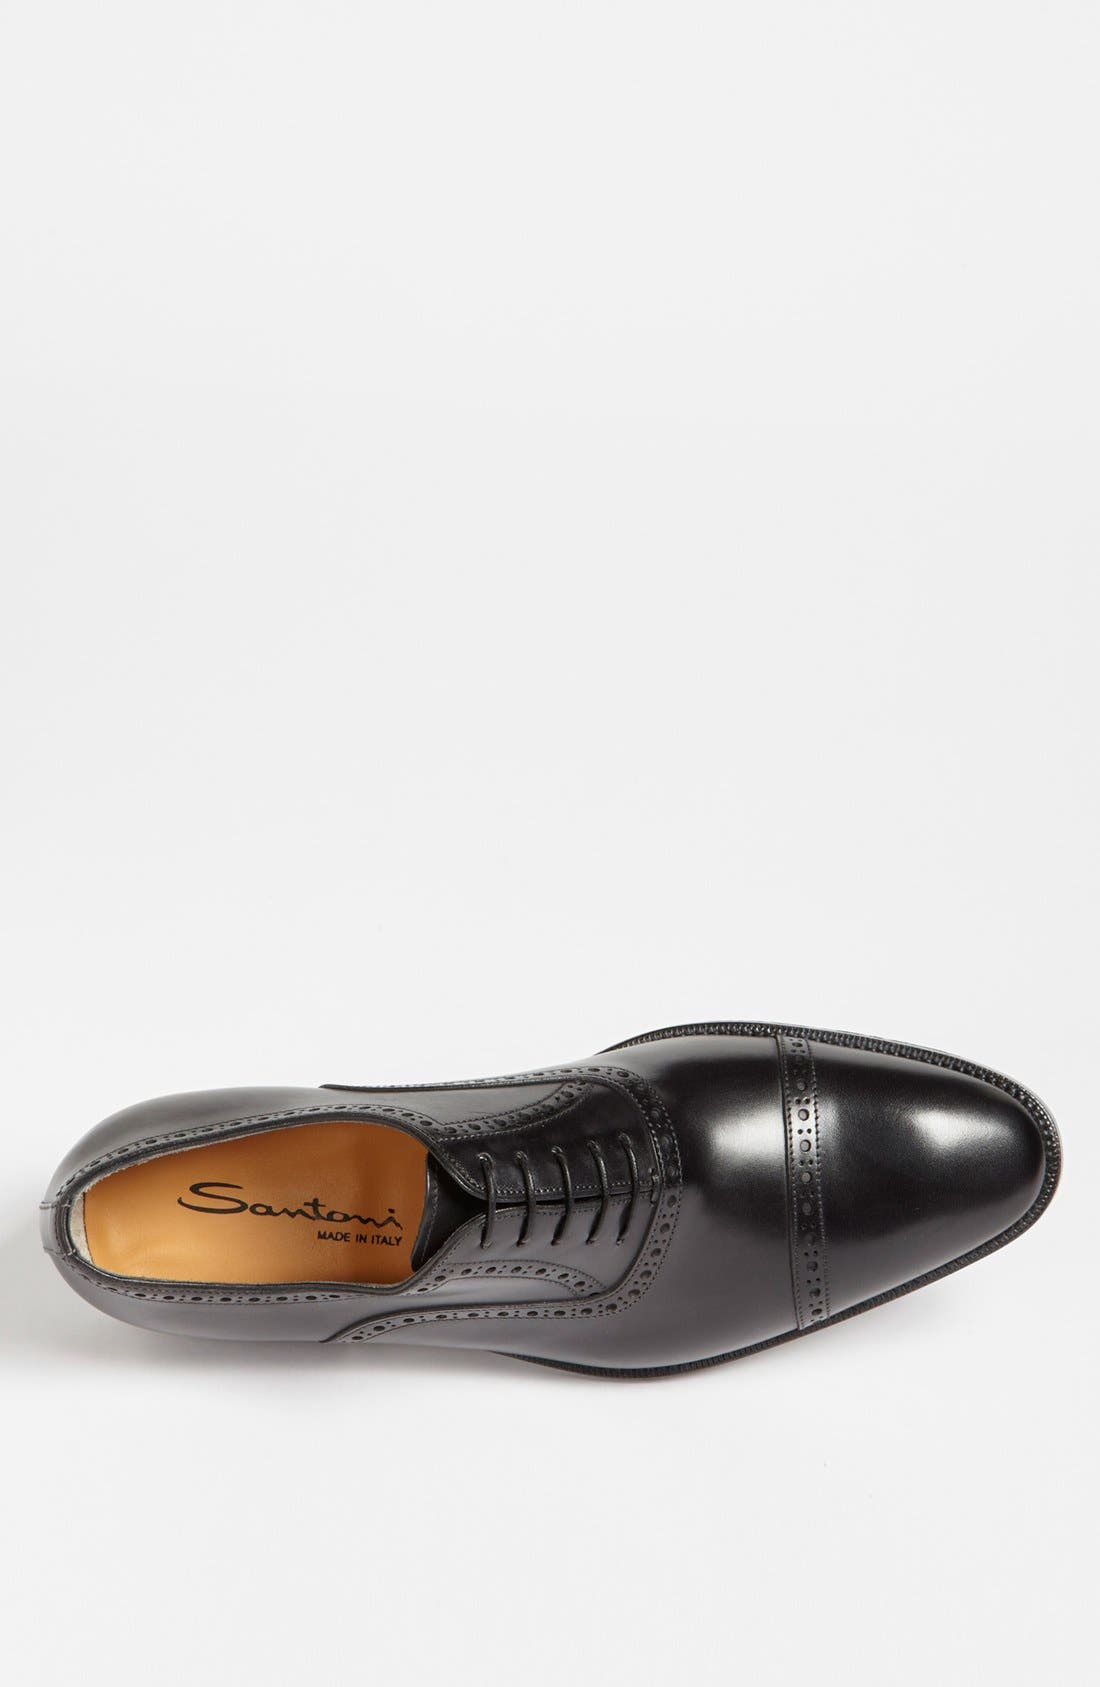 Alternate Image 3  - Santoni 'Bristol' Oxford